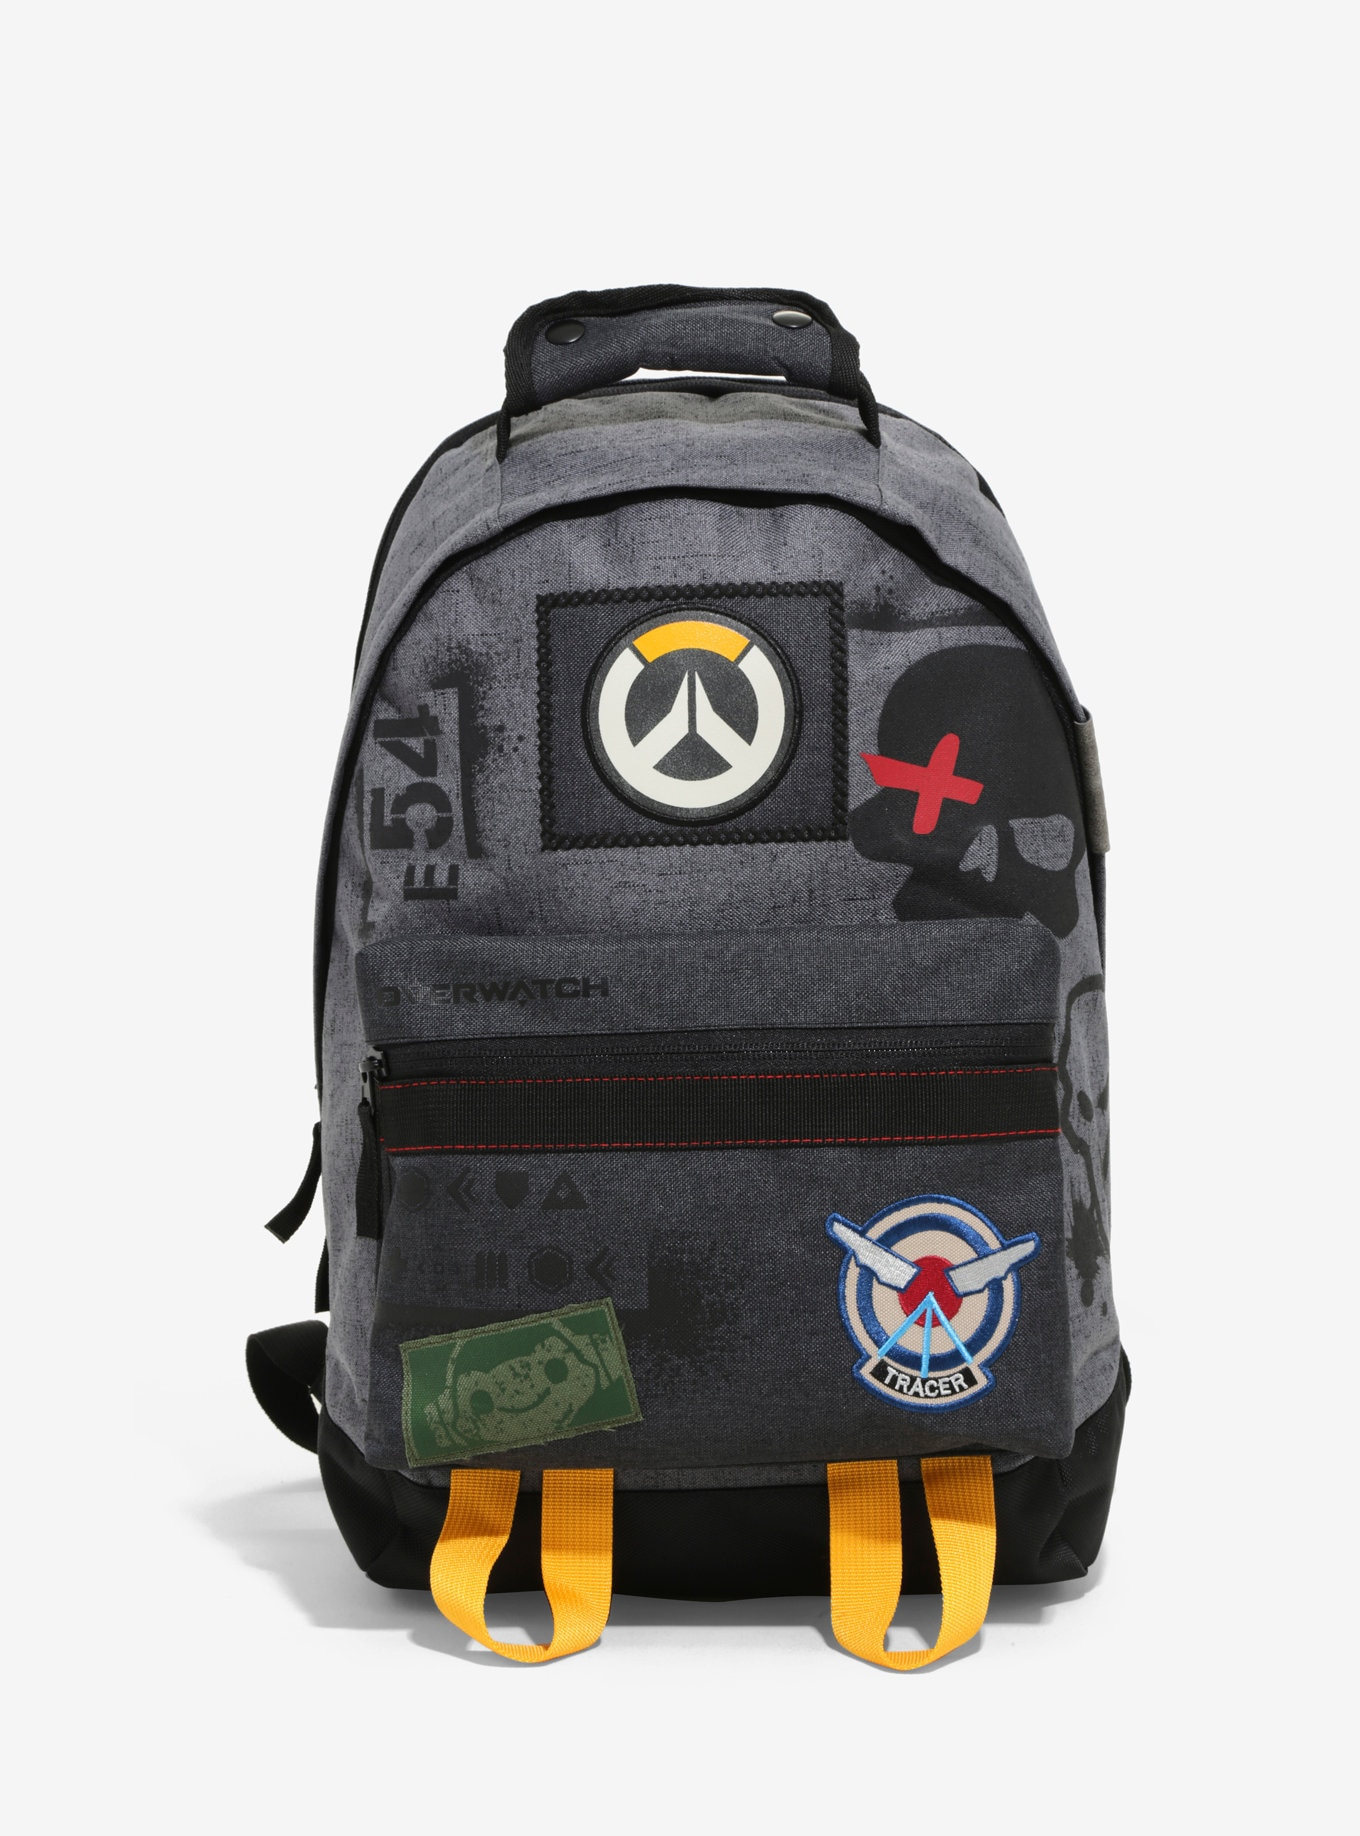 Overwatch Characters Patch Backpack Book Bag Tracer Soldier 76